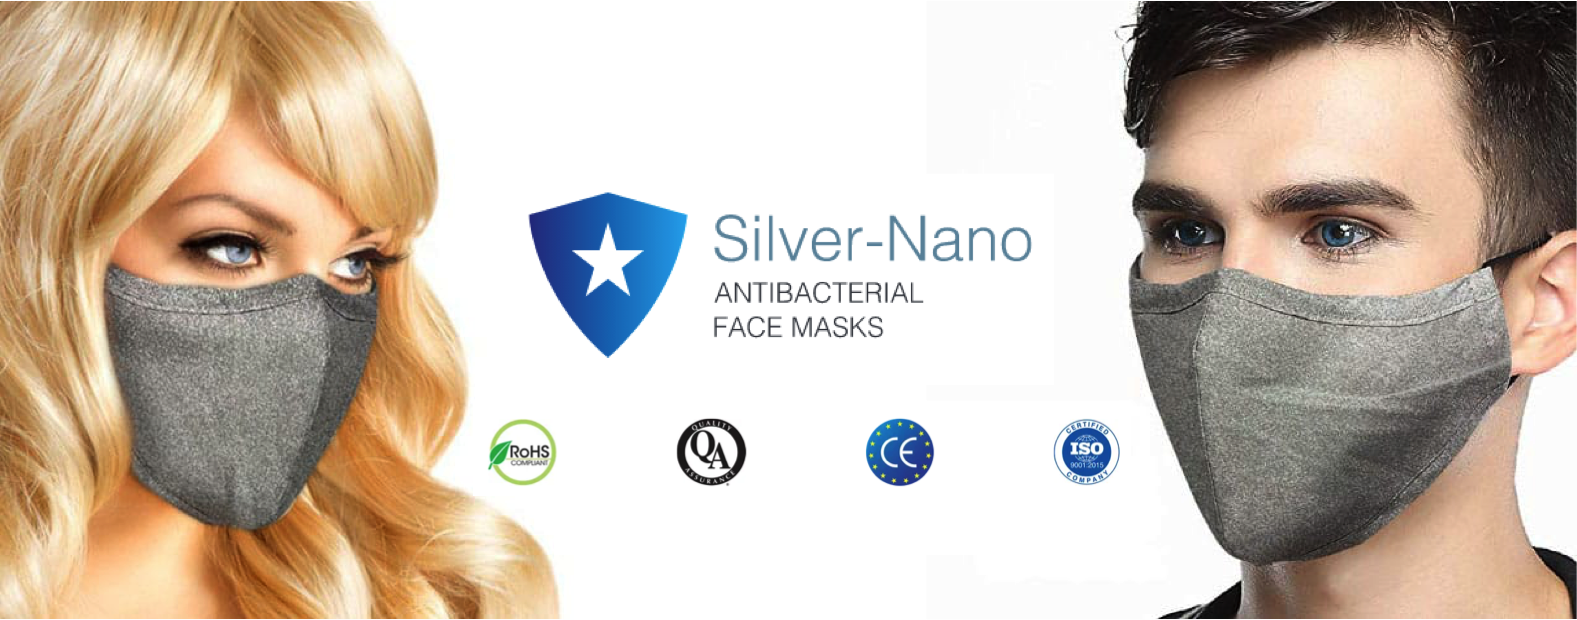 Re-usable Silver-Nano Anti-bacterial Face Masks have just arrived in stock